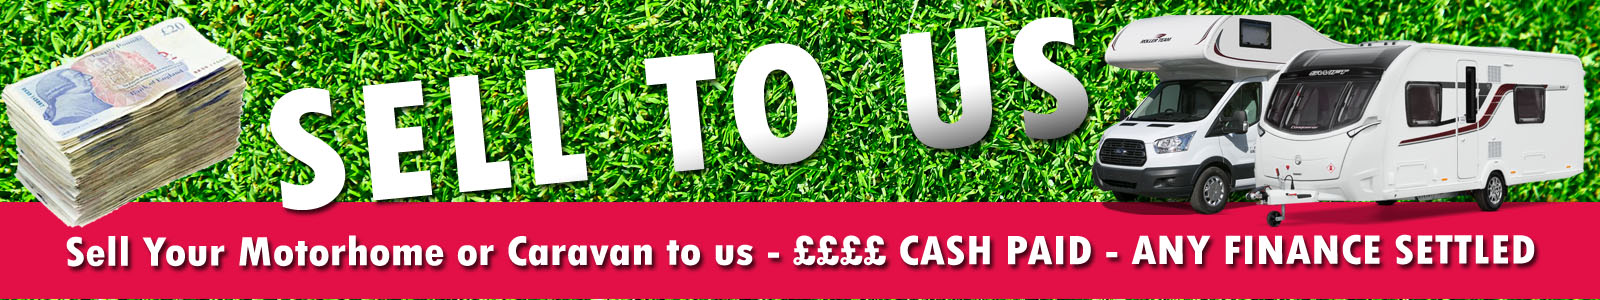 Sell Your Motorhome or Caravan to us - Cash Paid - Finance Settled - Ryedale Caravan and Leisure LTD